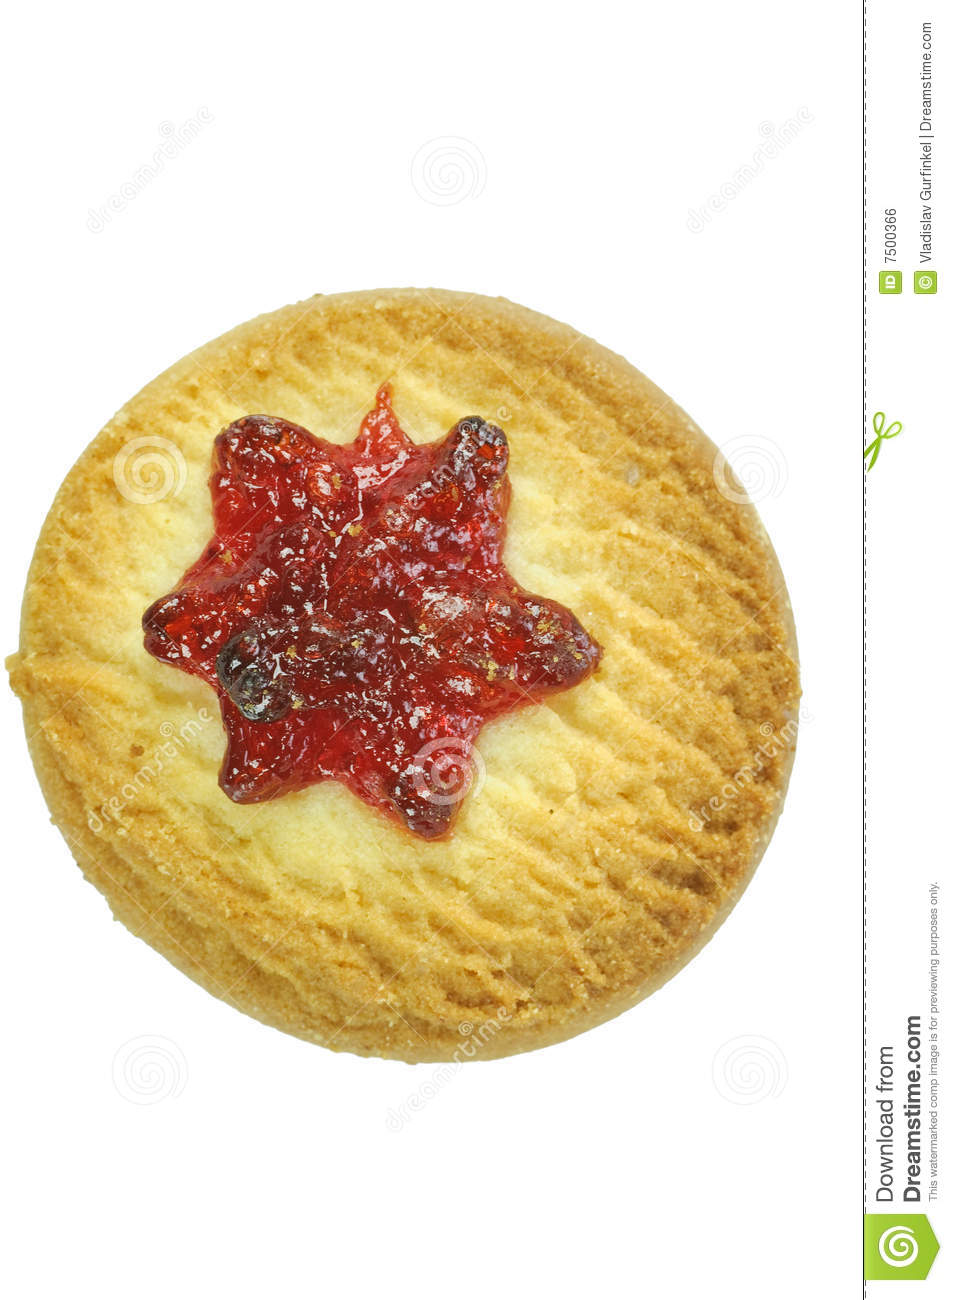 Cookie With Cherry Jam Royalty Free Stock Image - Image: 7500366